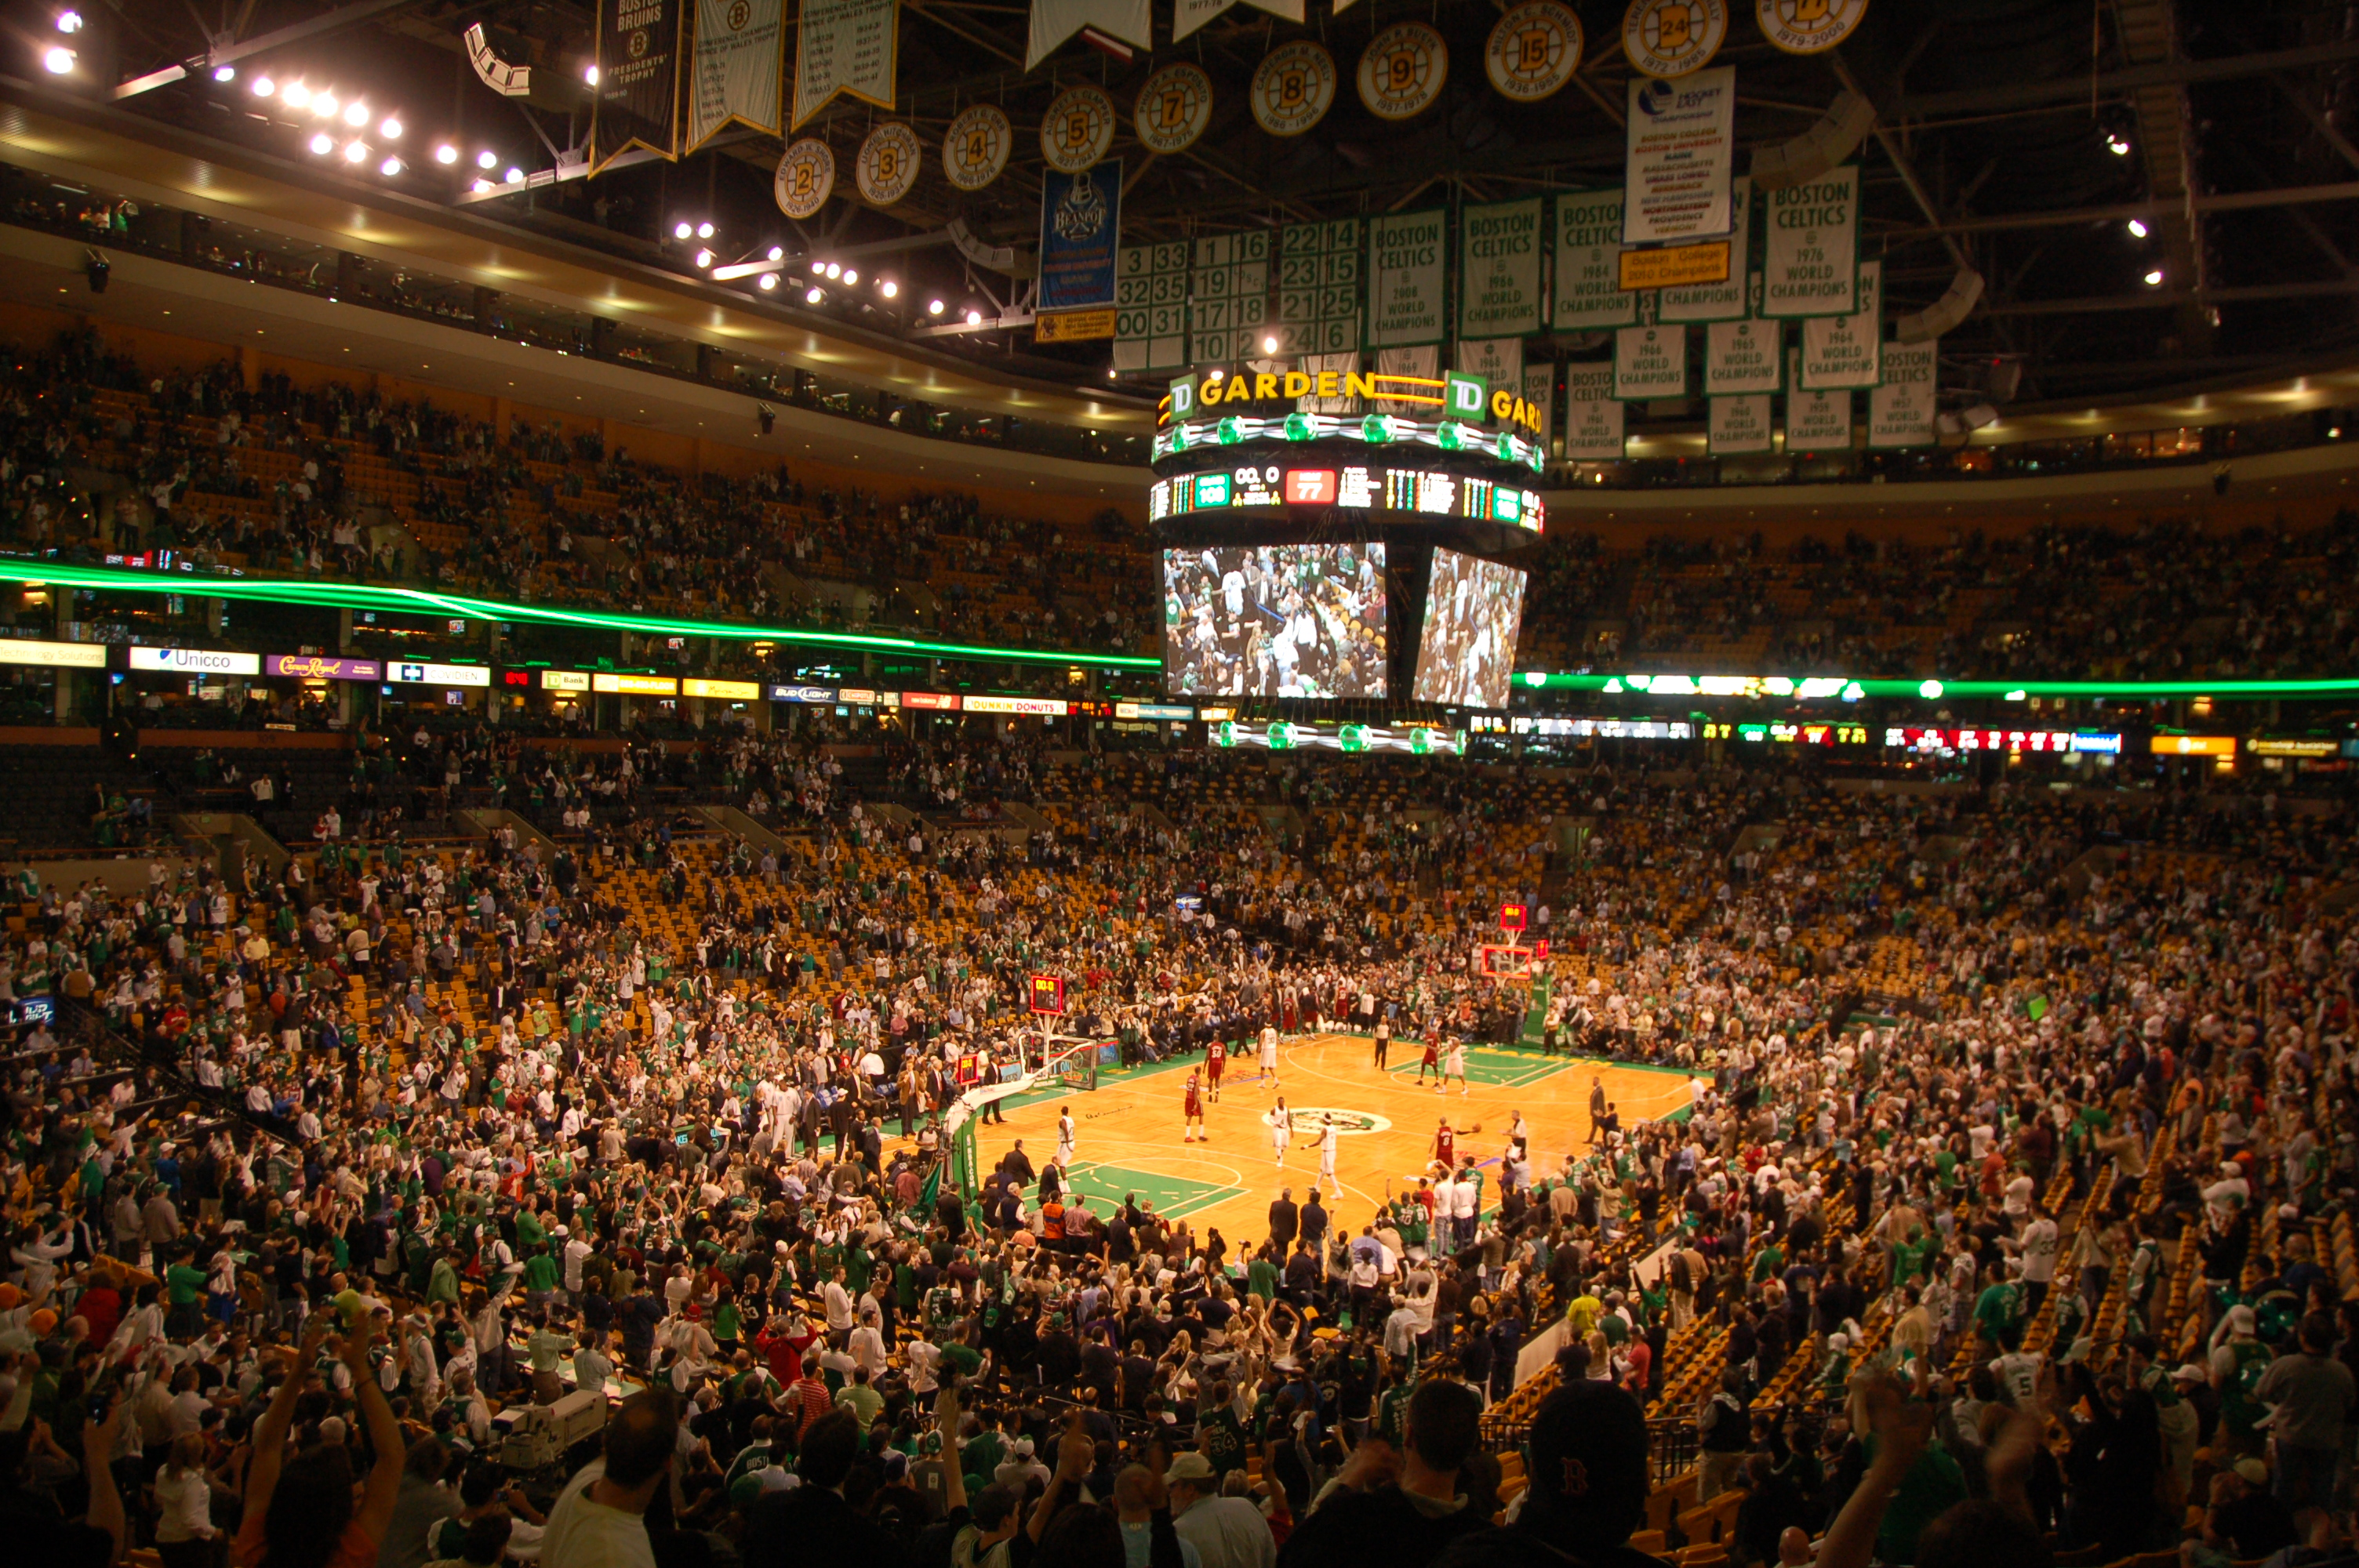 New Kosher Concession At Td Garden In Boston Ma Yeahthatskosher Kosher Restaurants Travel